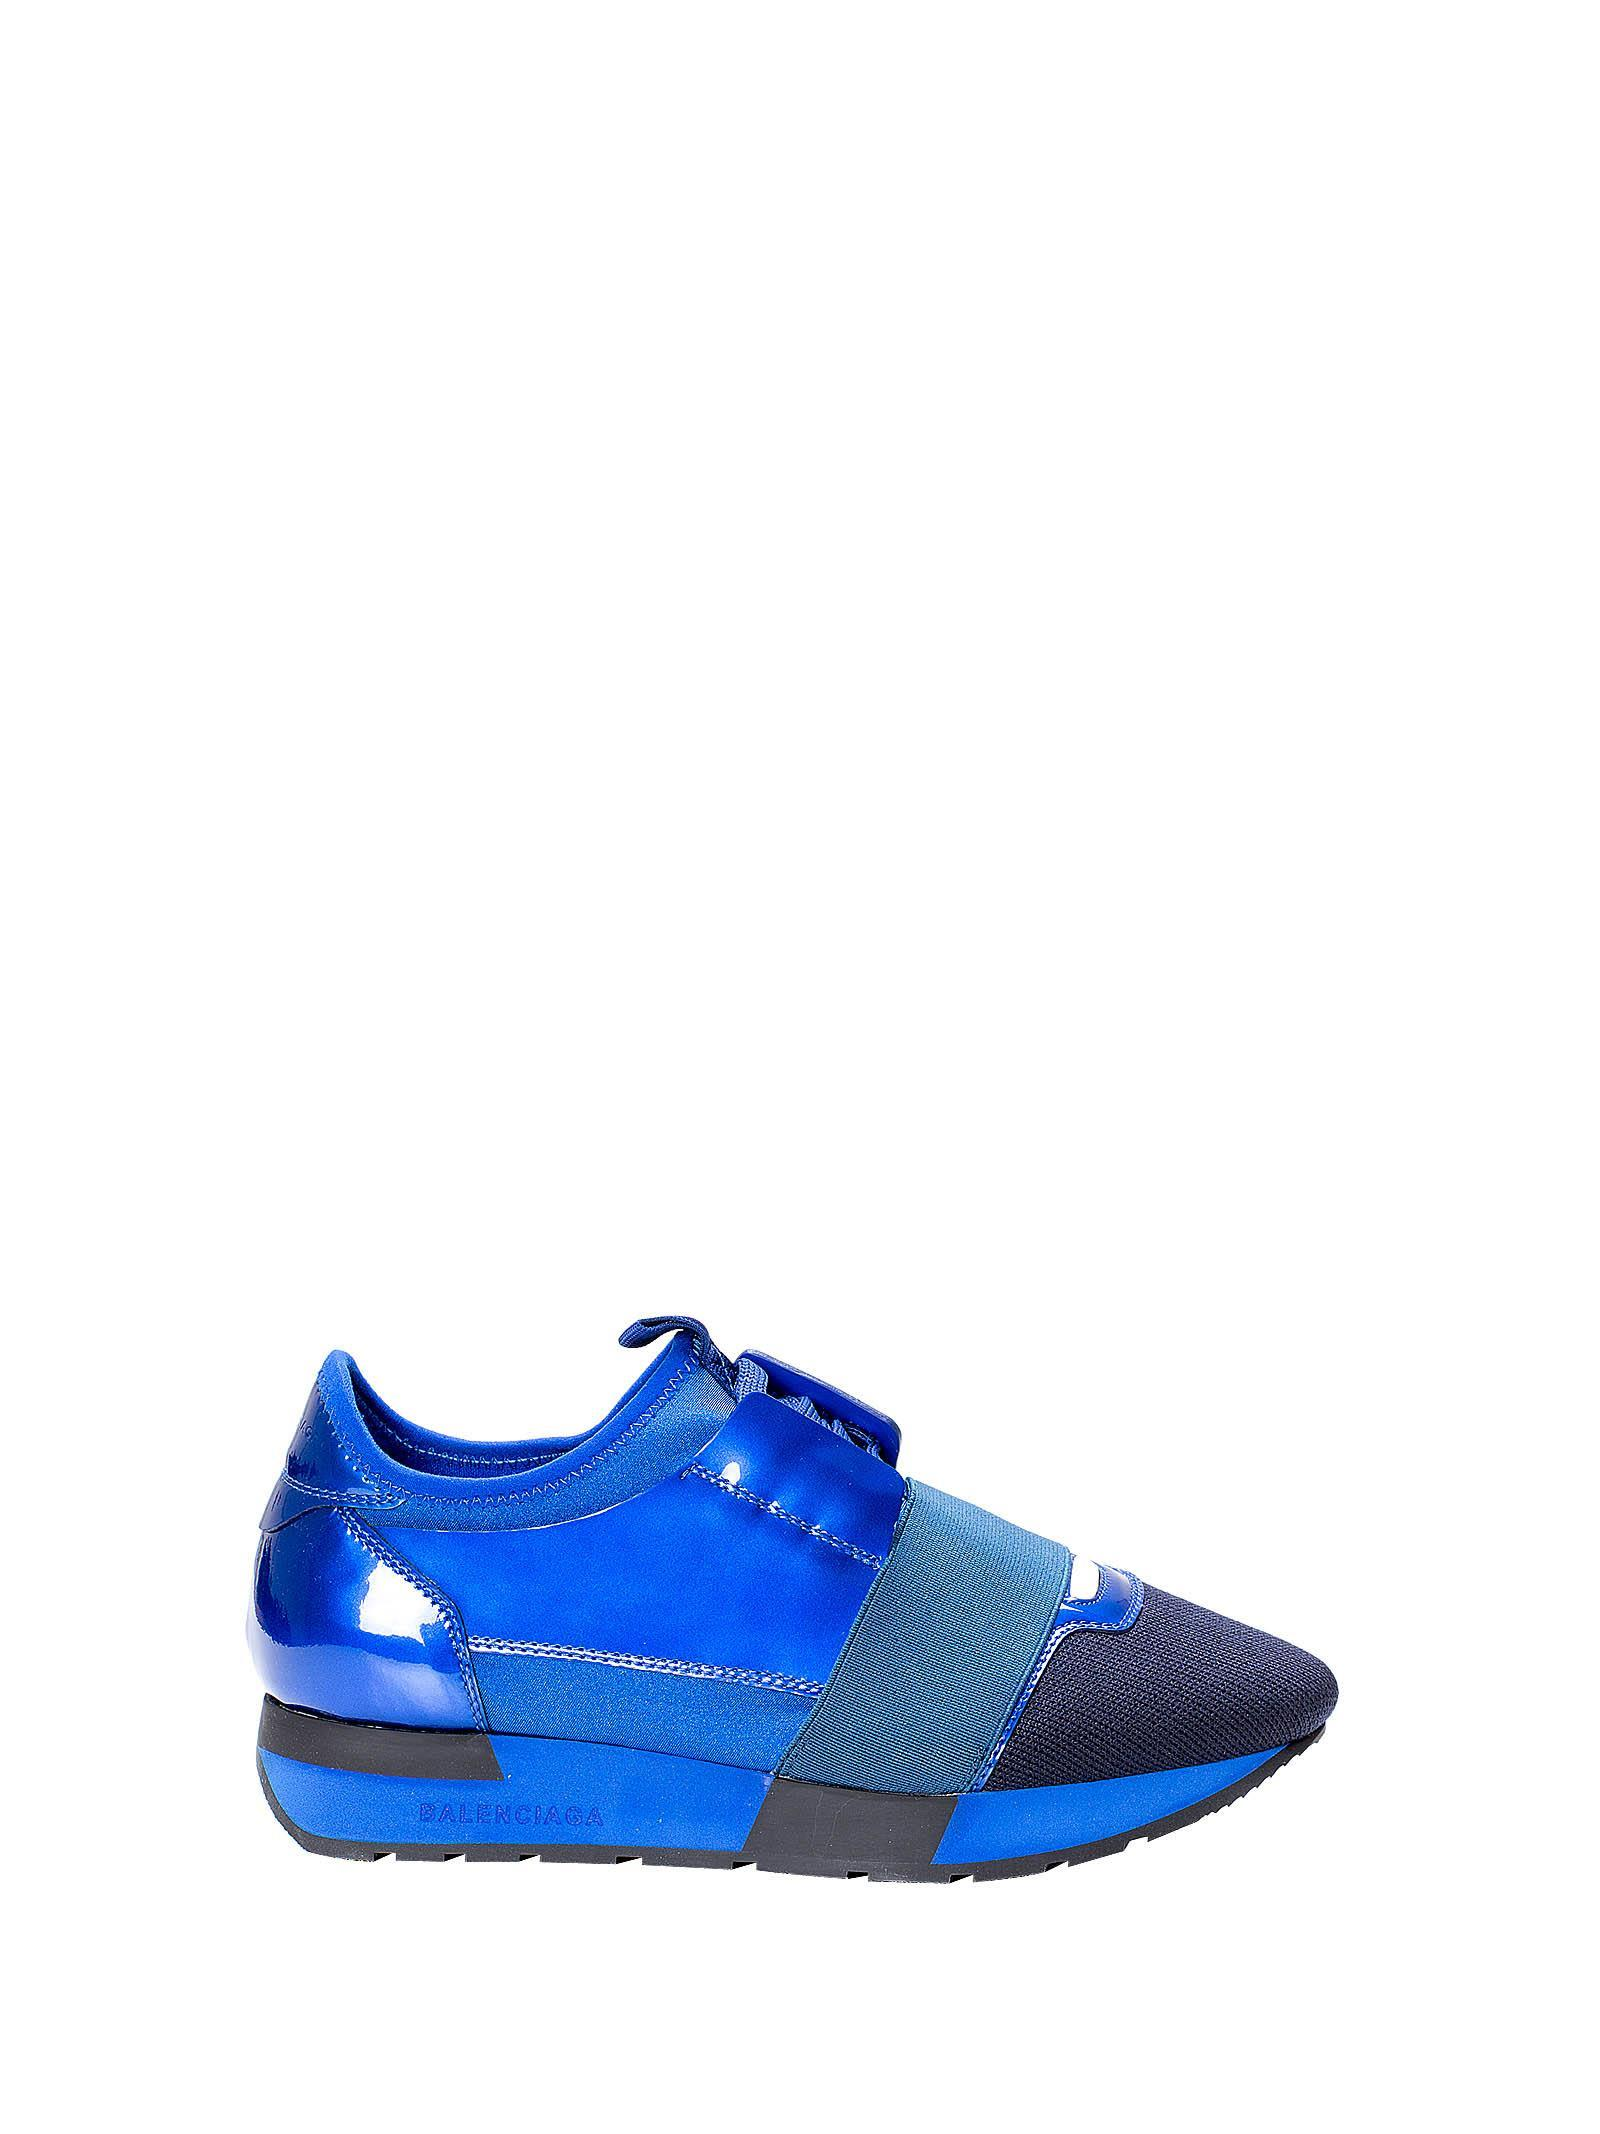 949f1614c30a Balenciaga Blue Patent Race Runner Sneakers In Variante Bleue